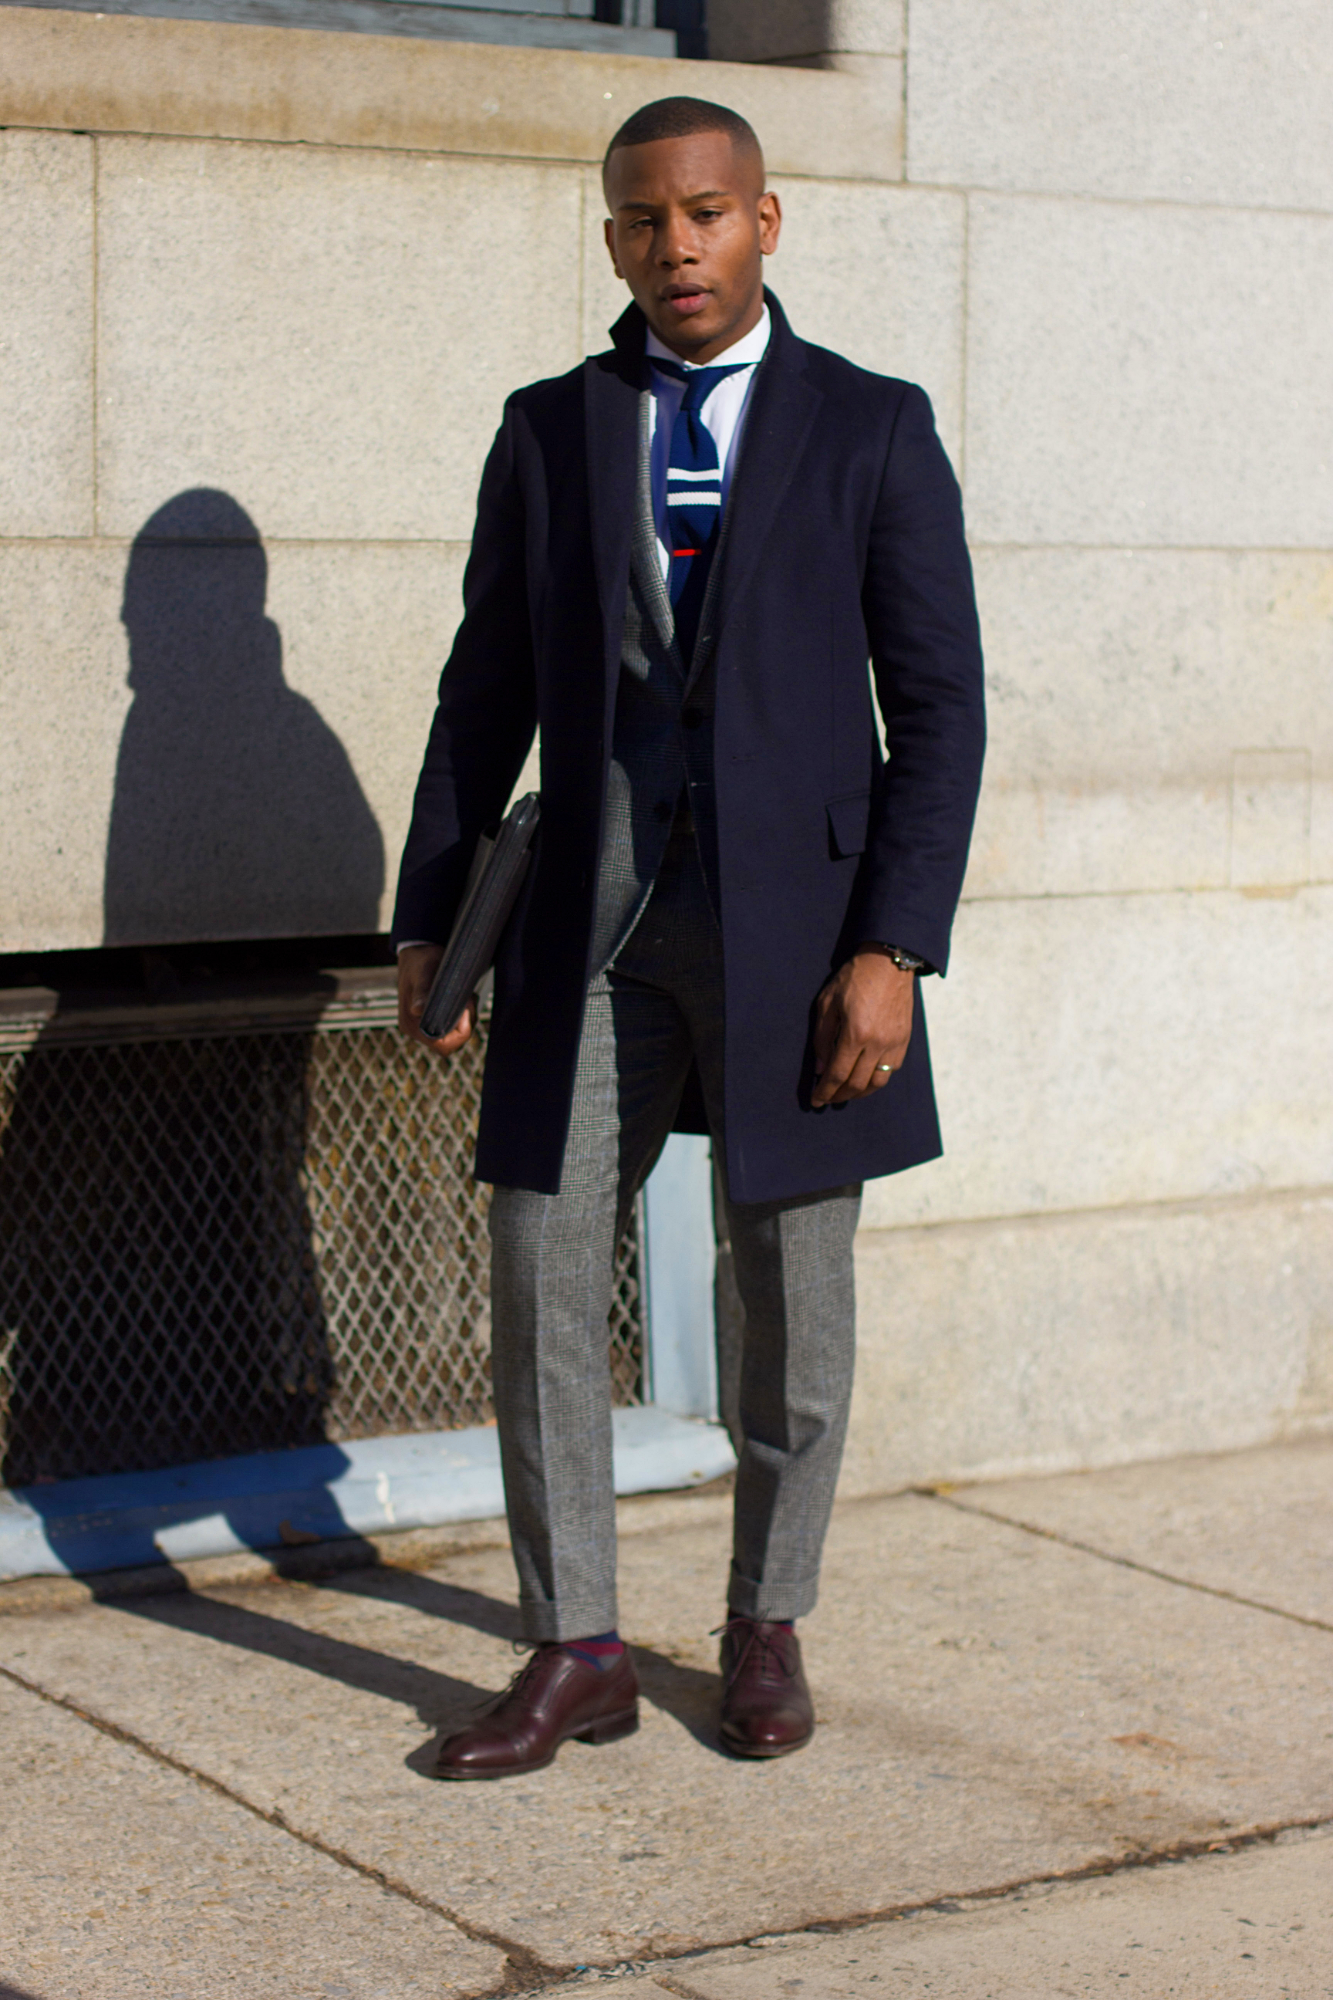 Men's Navy Topcoat Over Suit Sabir M. Peele in Uniqlo Coat